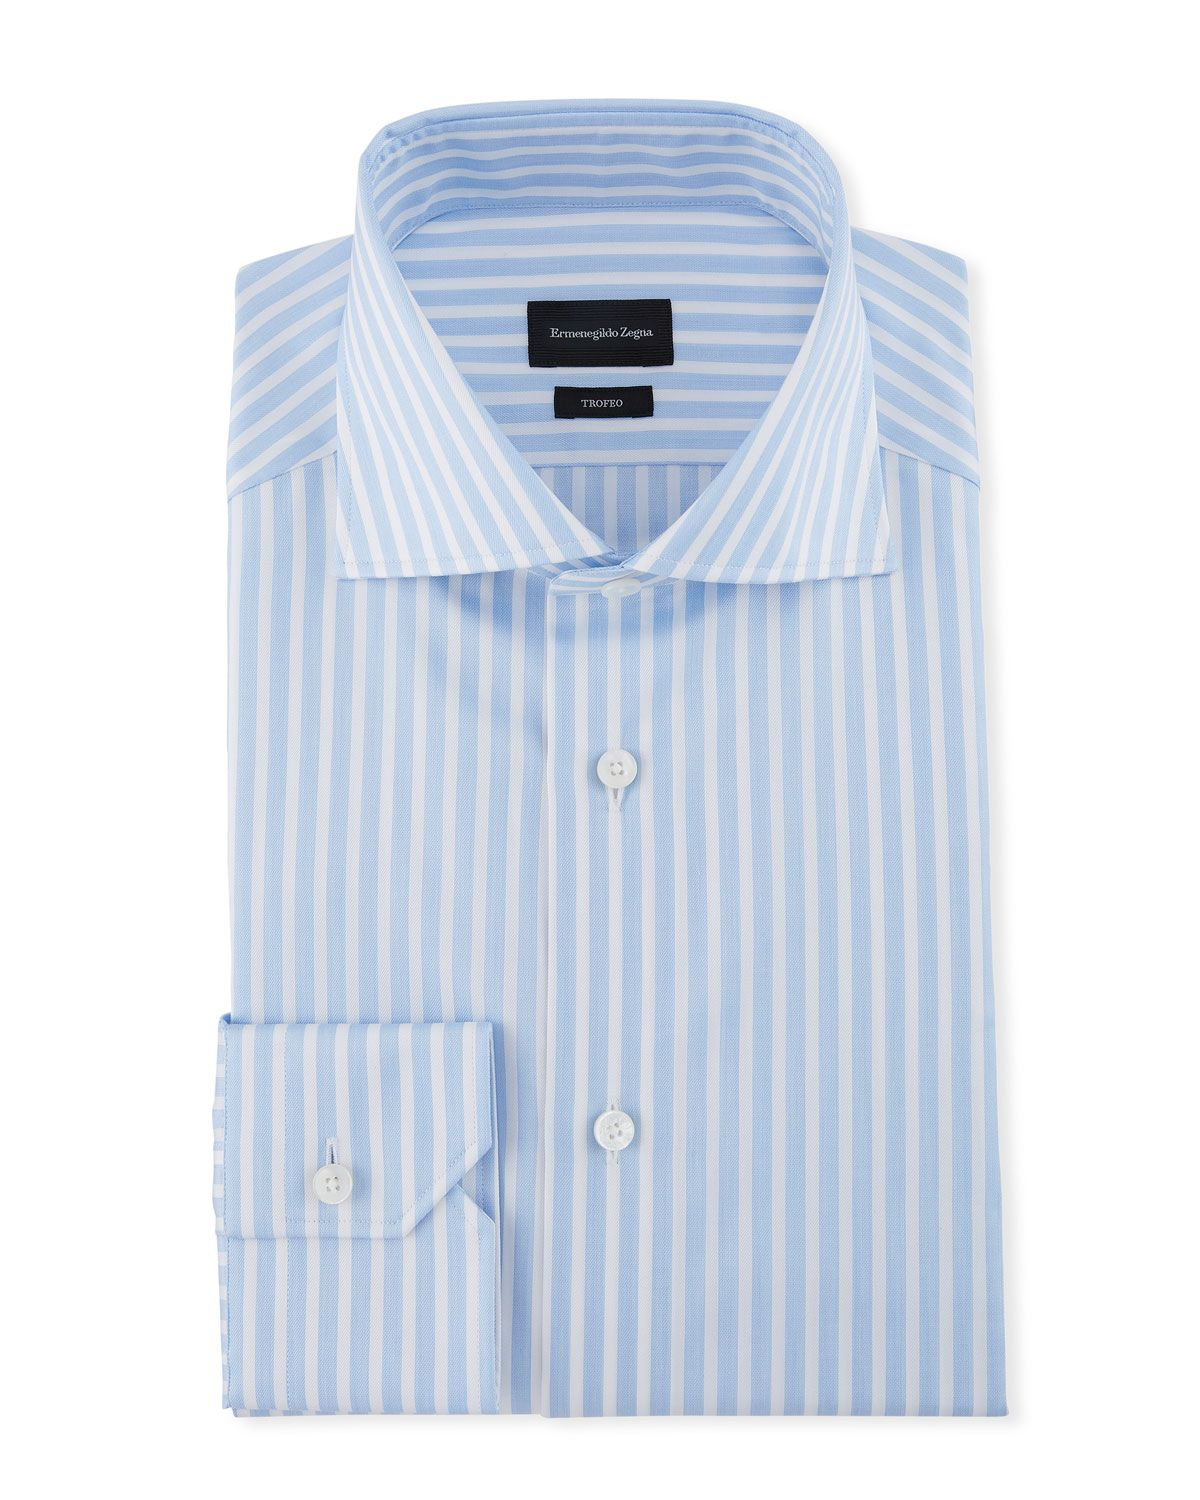 a1bc123b ERMENEGILDO ZEGNA MEN'S WIDE STRIPE DRESS SHIRT. #ermenegildozegna ...